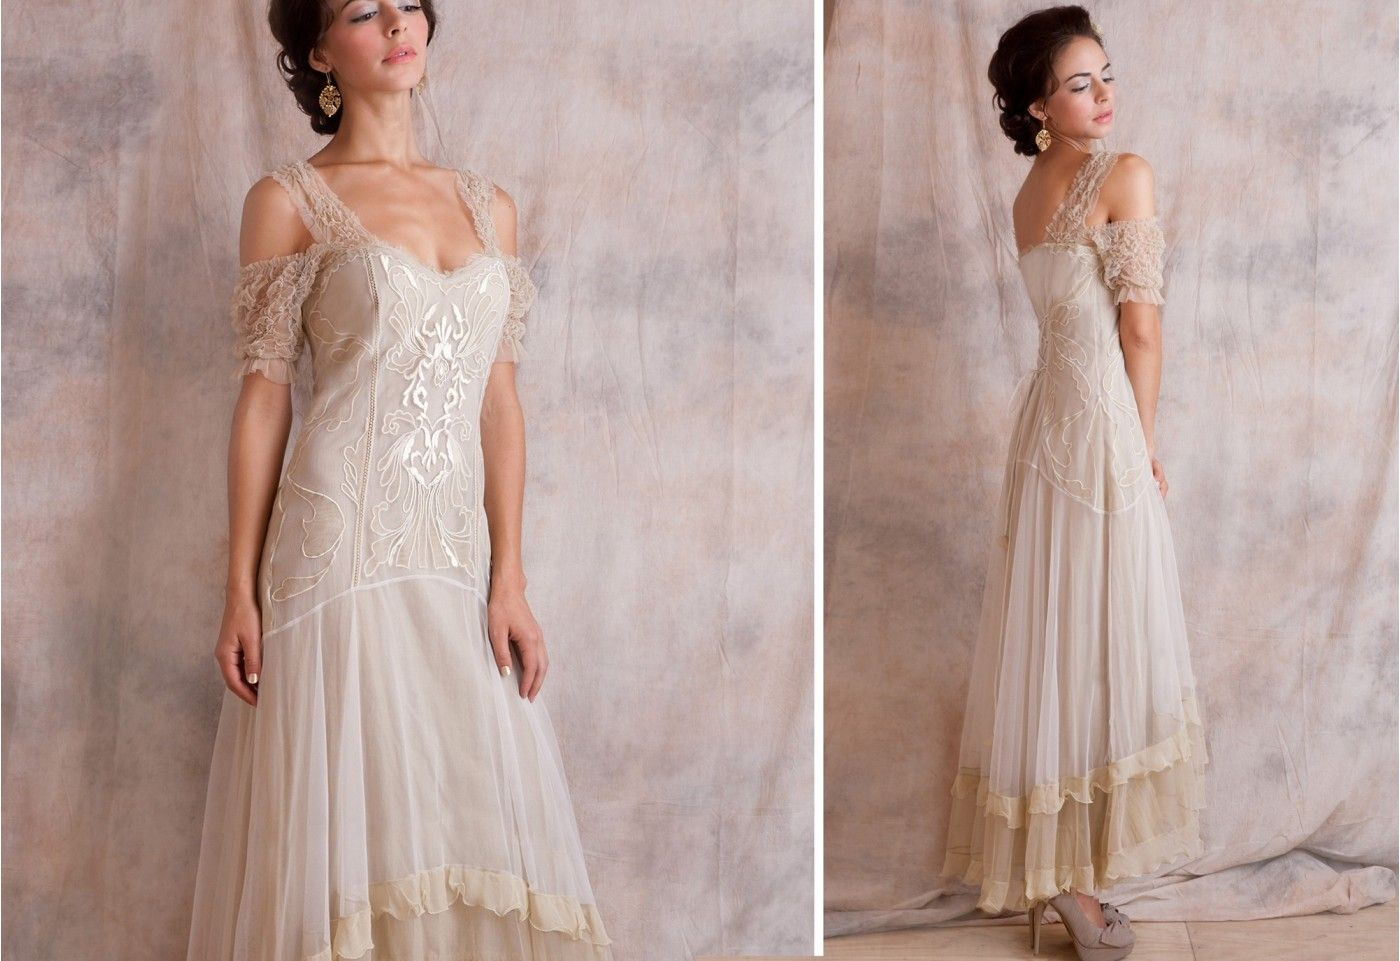 Second Wedding Dresses Of Splendid Dress Ideas Informal Venetian Vintage